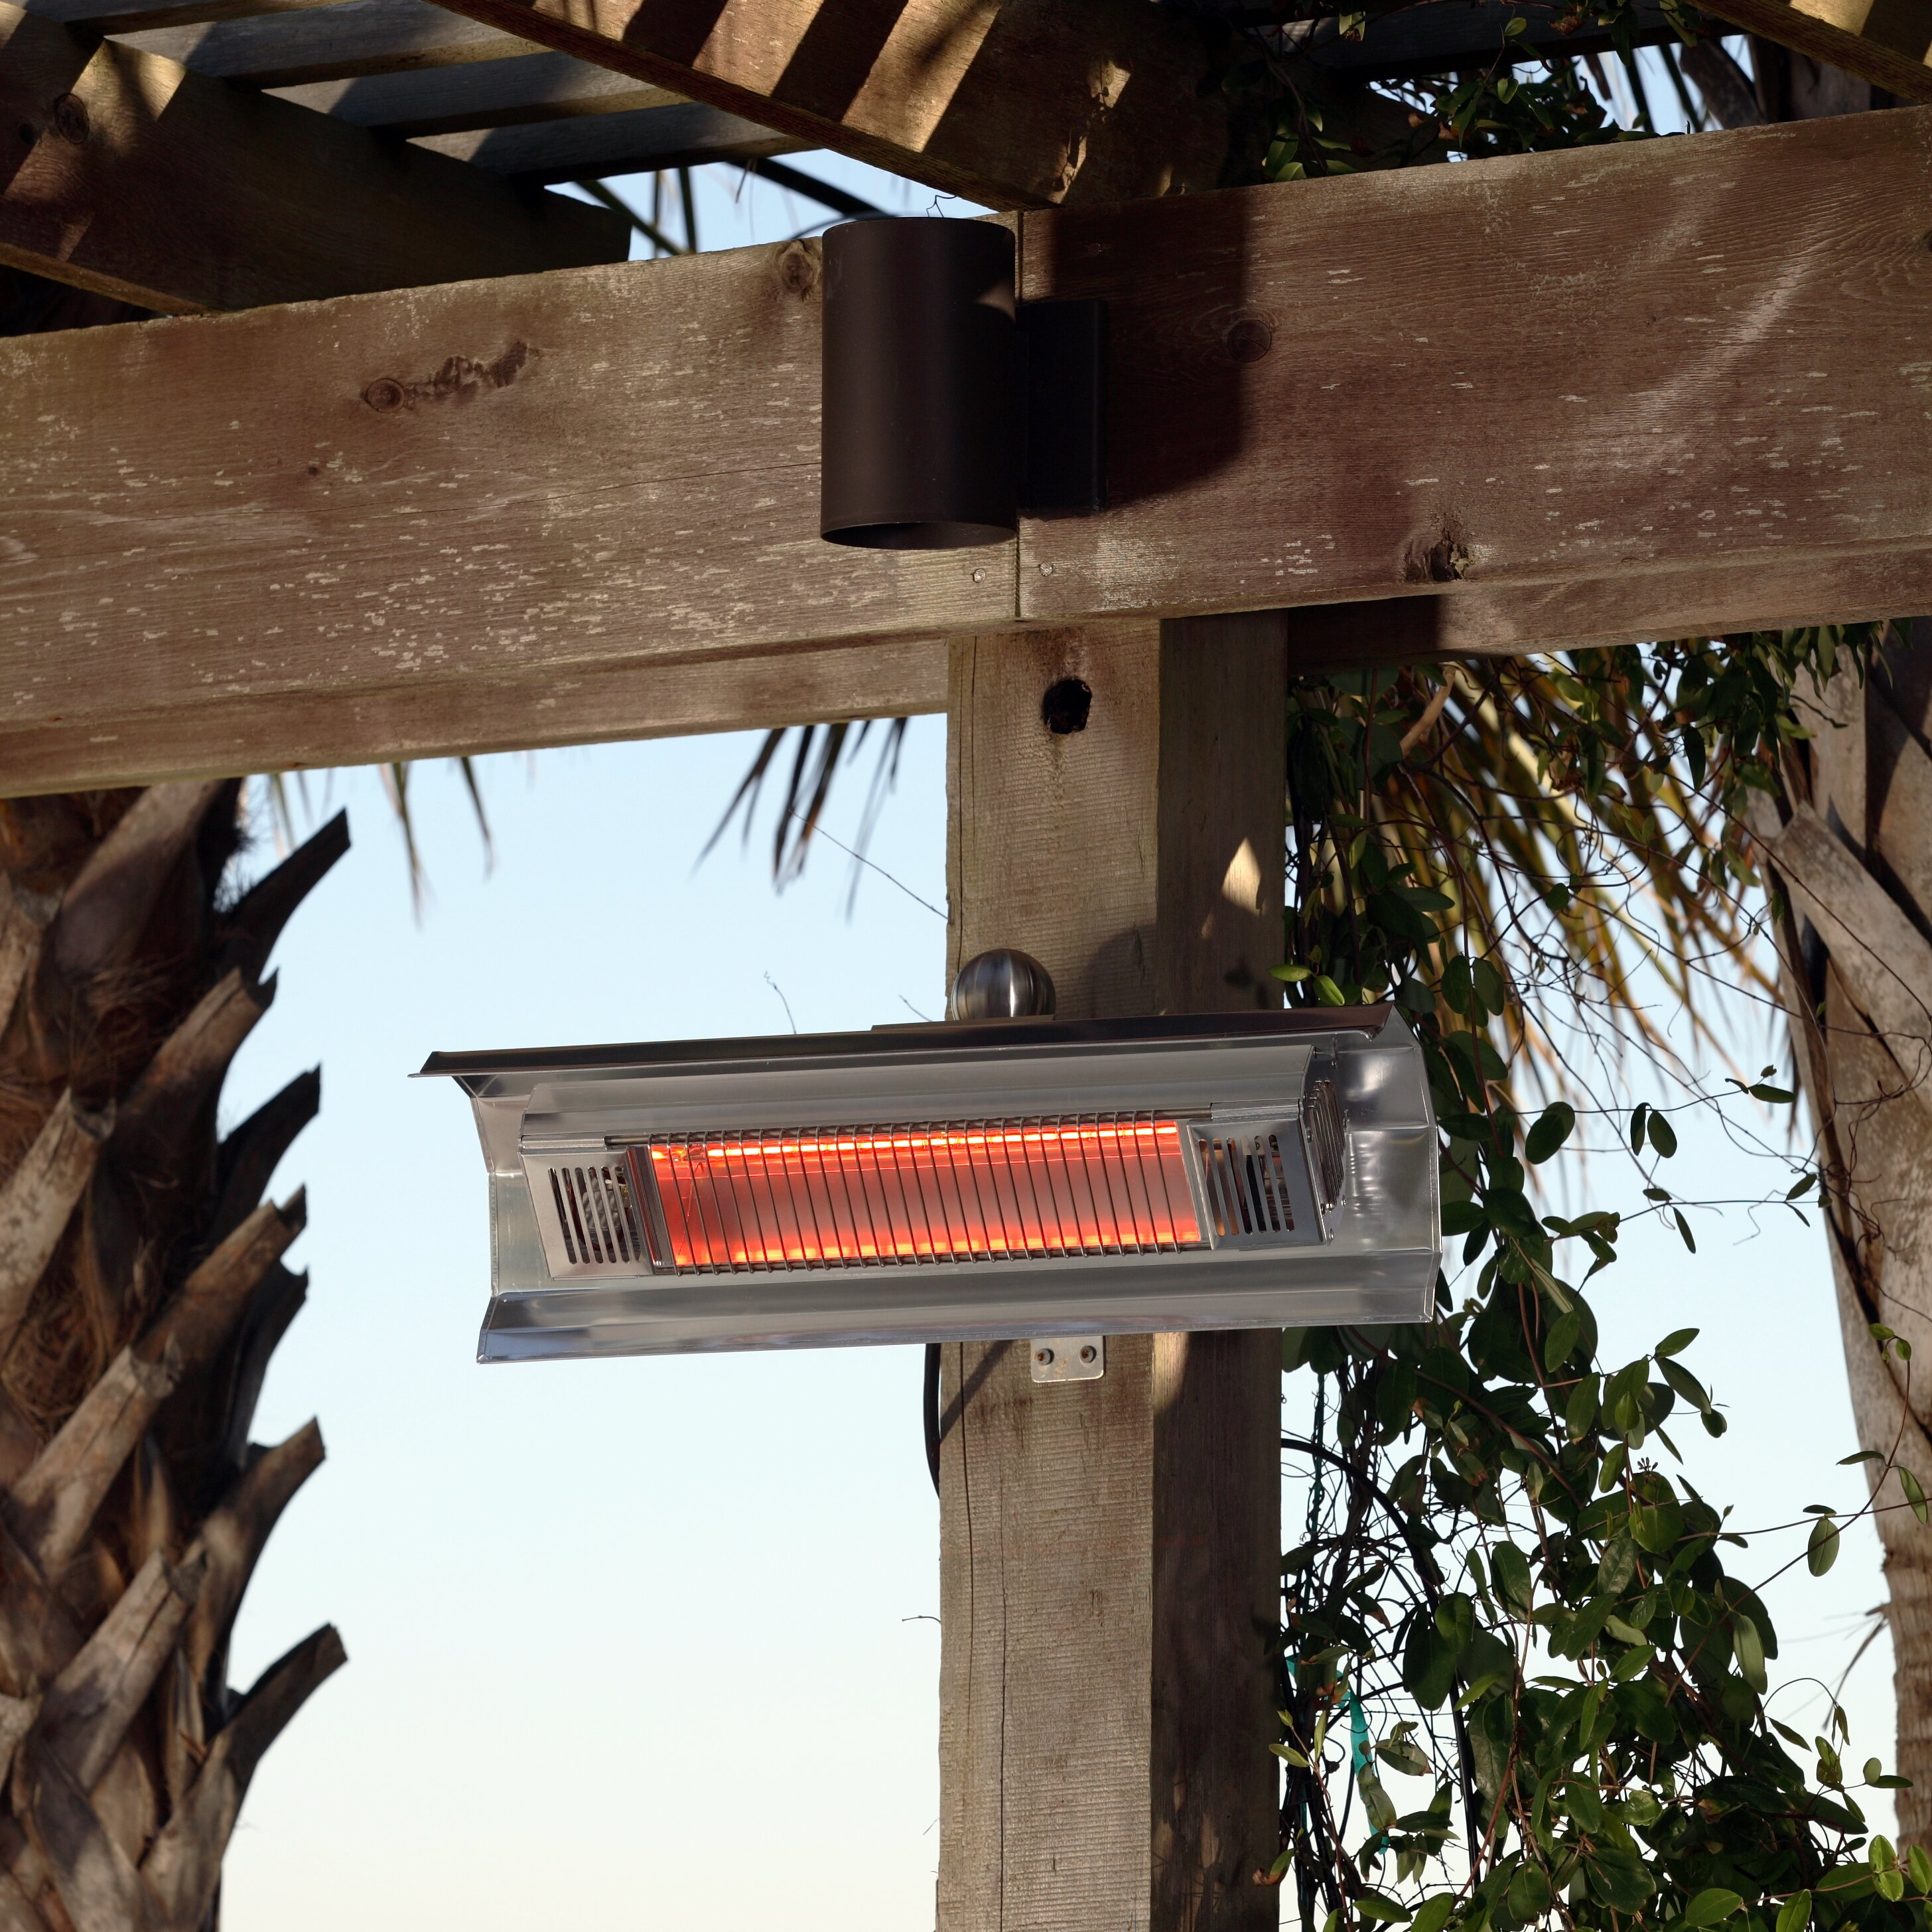 Fire Sense 1500 Watt Electric Mounted Patio Heater Reviews – Fire Sense Patio Heater